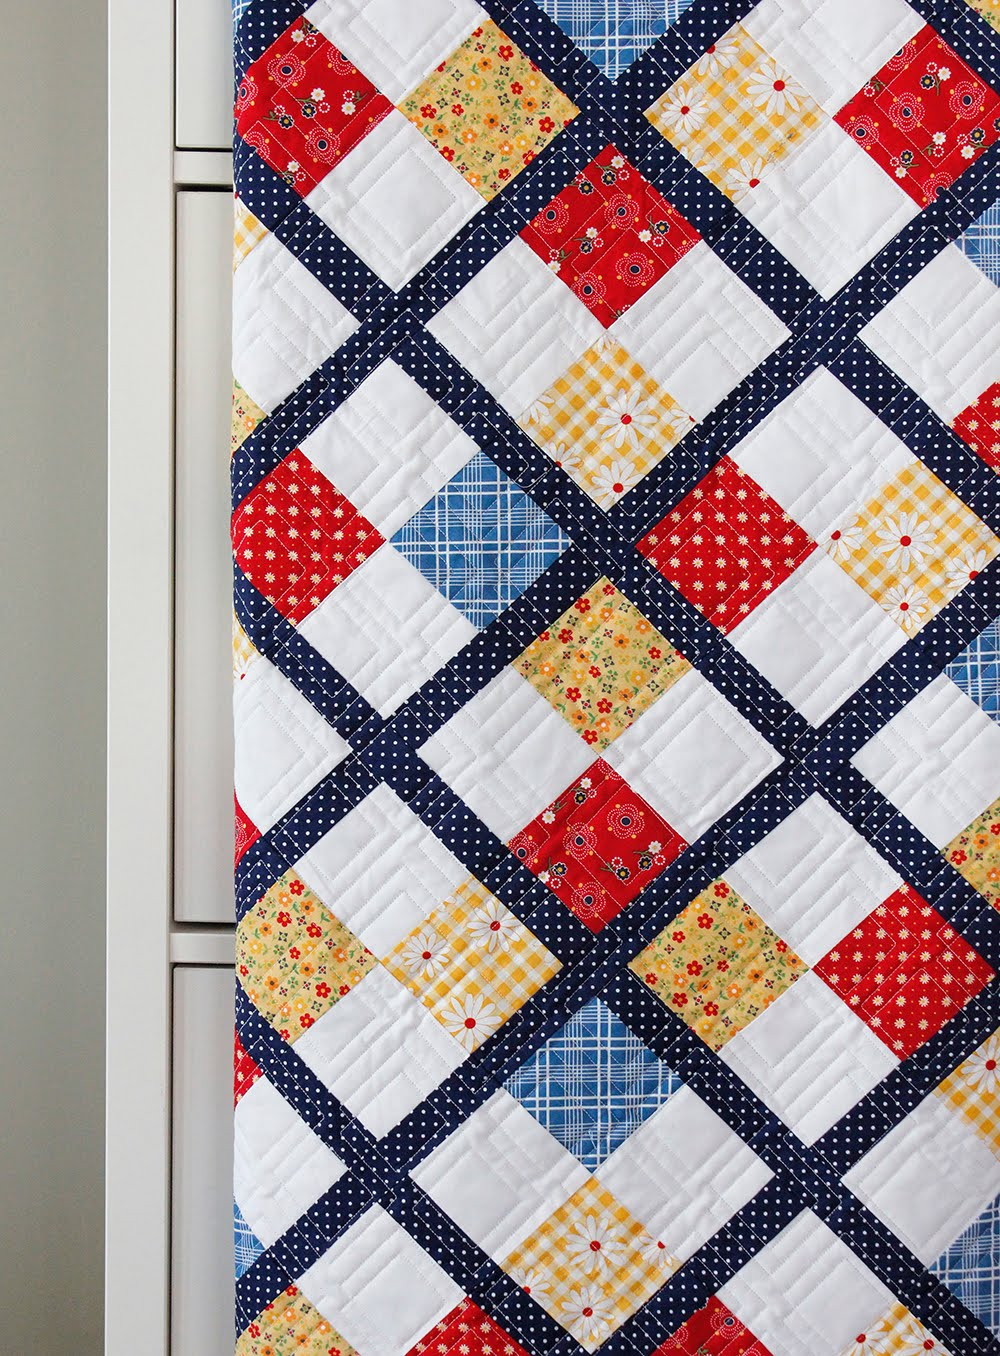 Quilt Pattern For 9 Fat Quarters : A Bright Corner: Five Fat Quarter Fun - Preppy Quilt Pattern